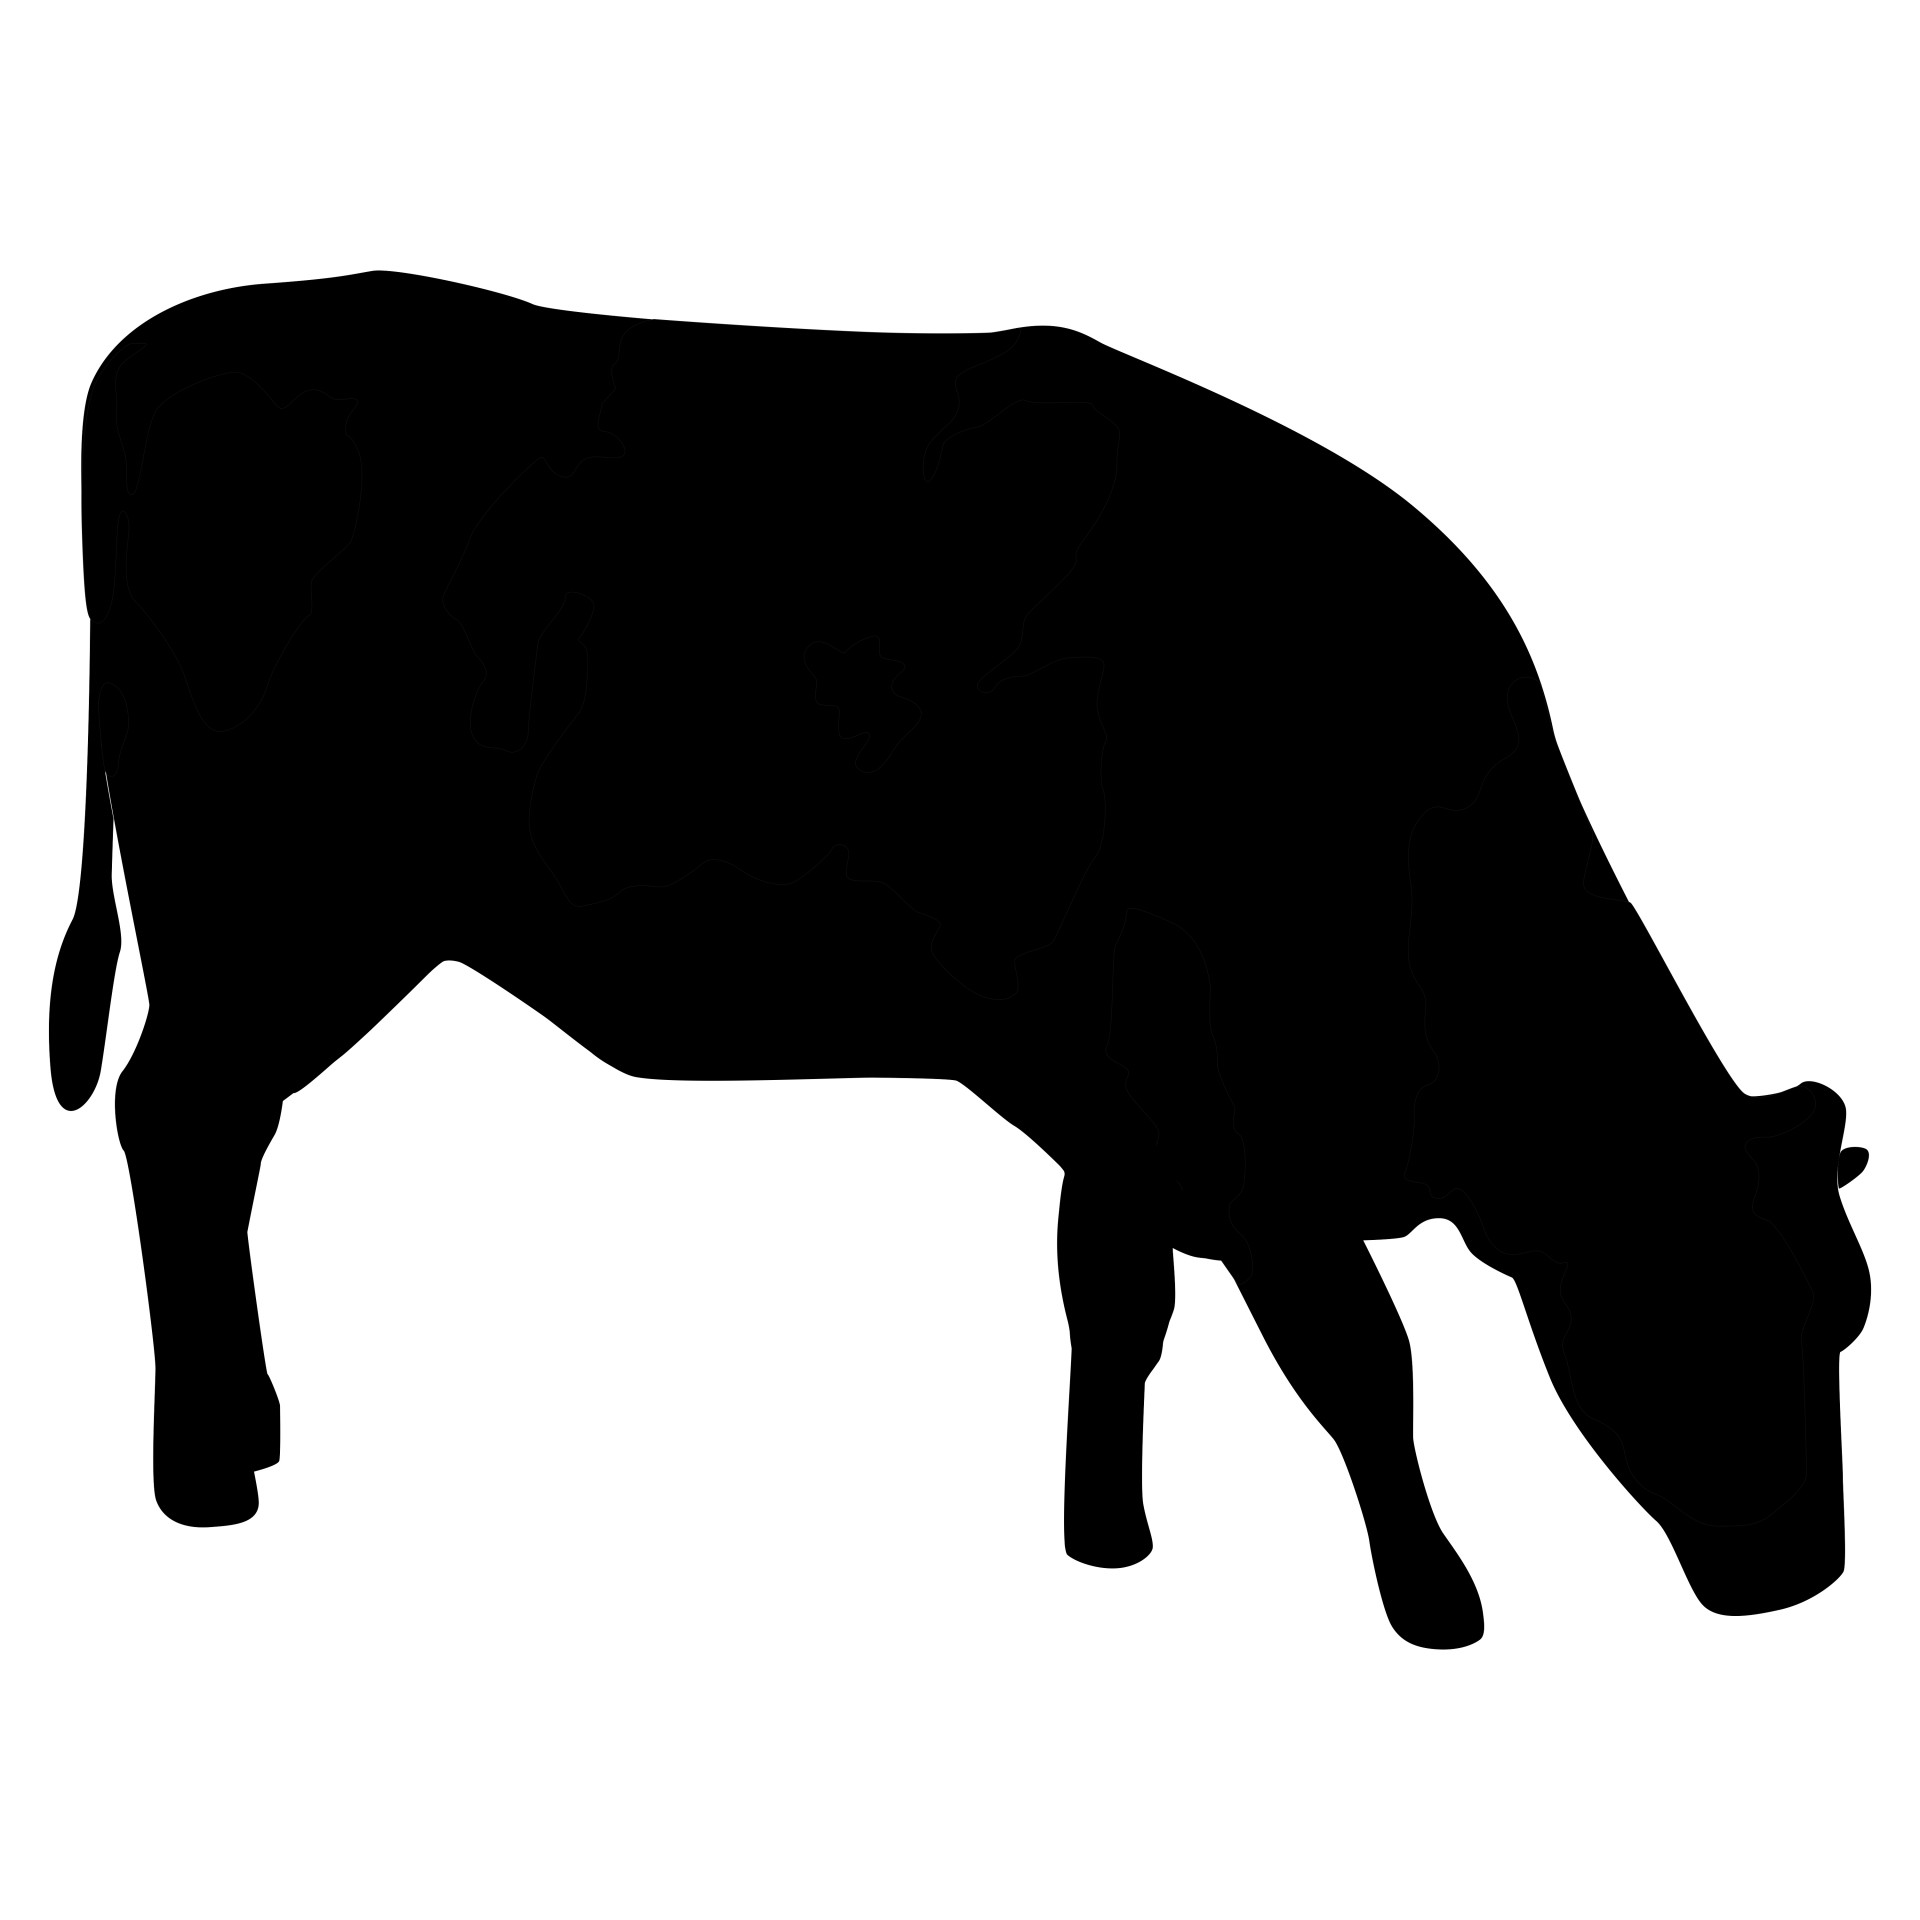 Free stock photo public. Cow clip art silhouette png royalty free library